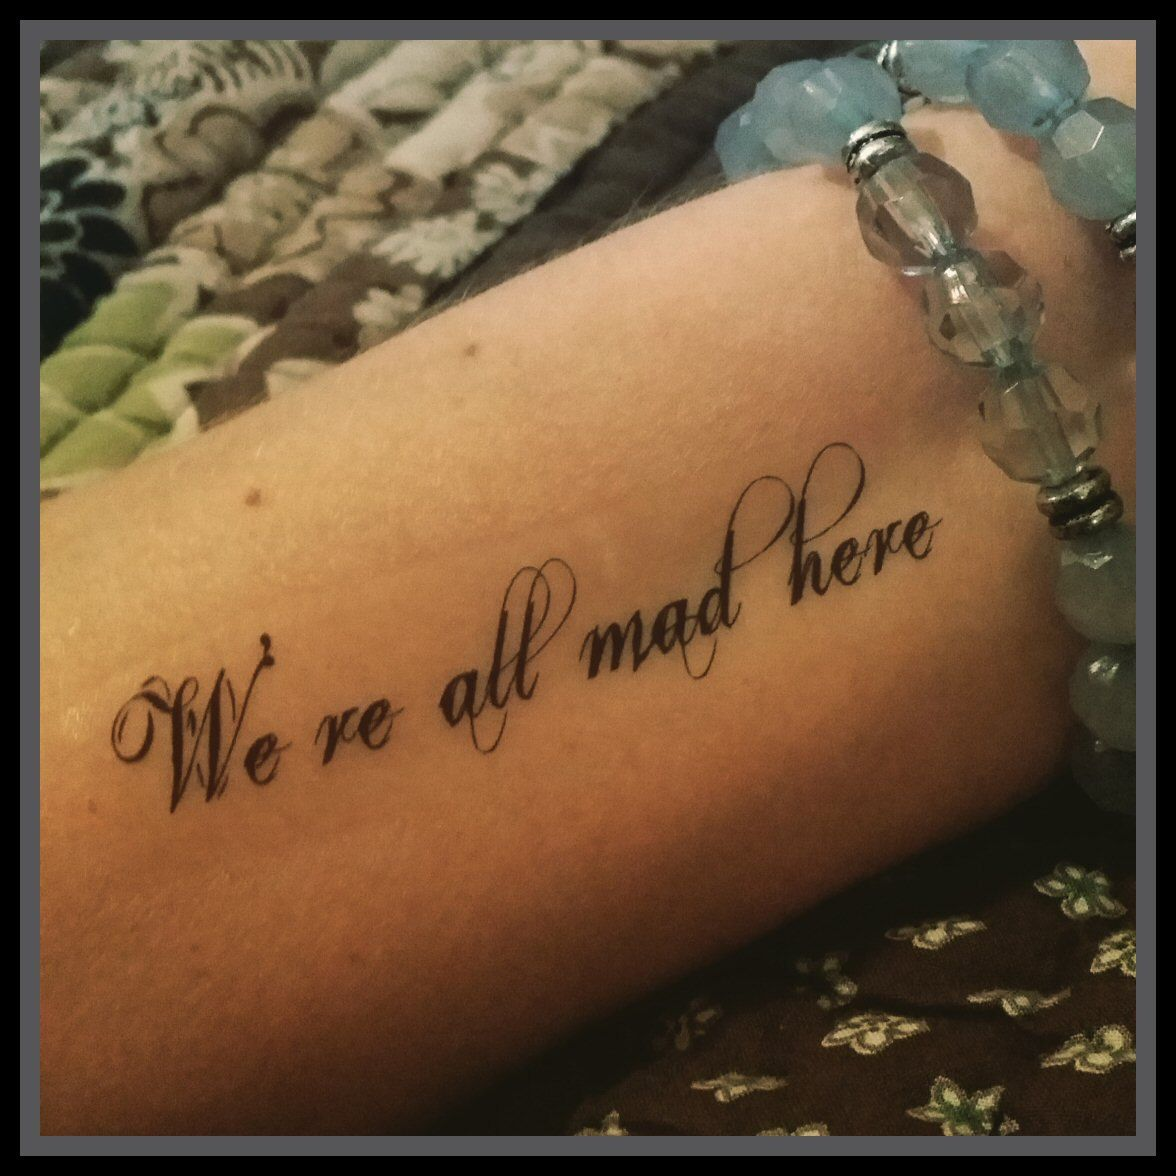 Alice In Wonderland Quote Tattoos: Alice In Wonderland Quotes We're All Mad Here Tattoo